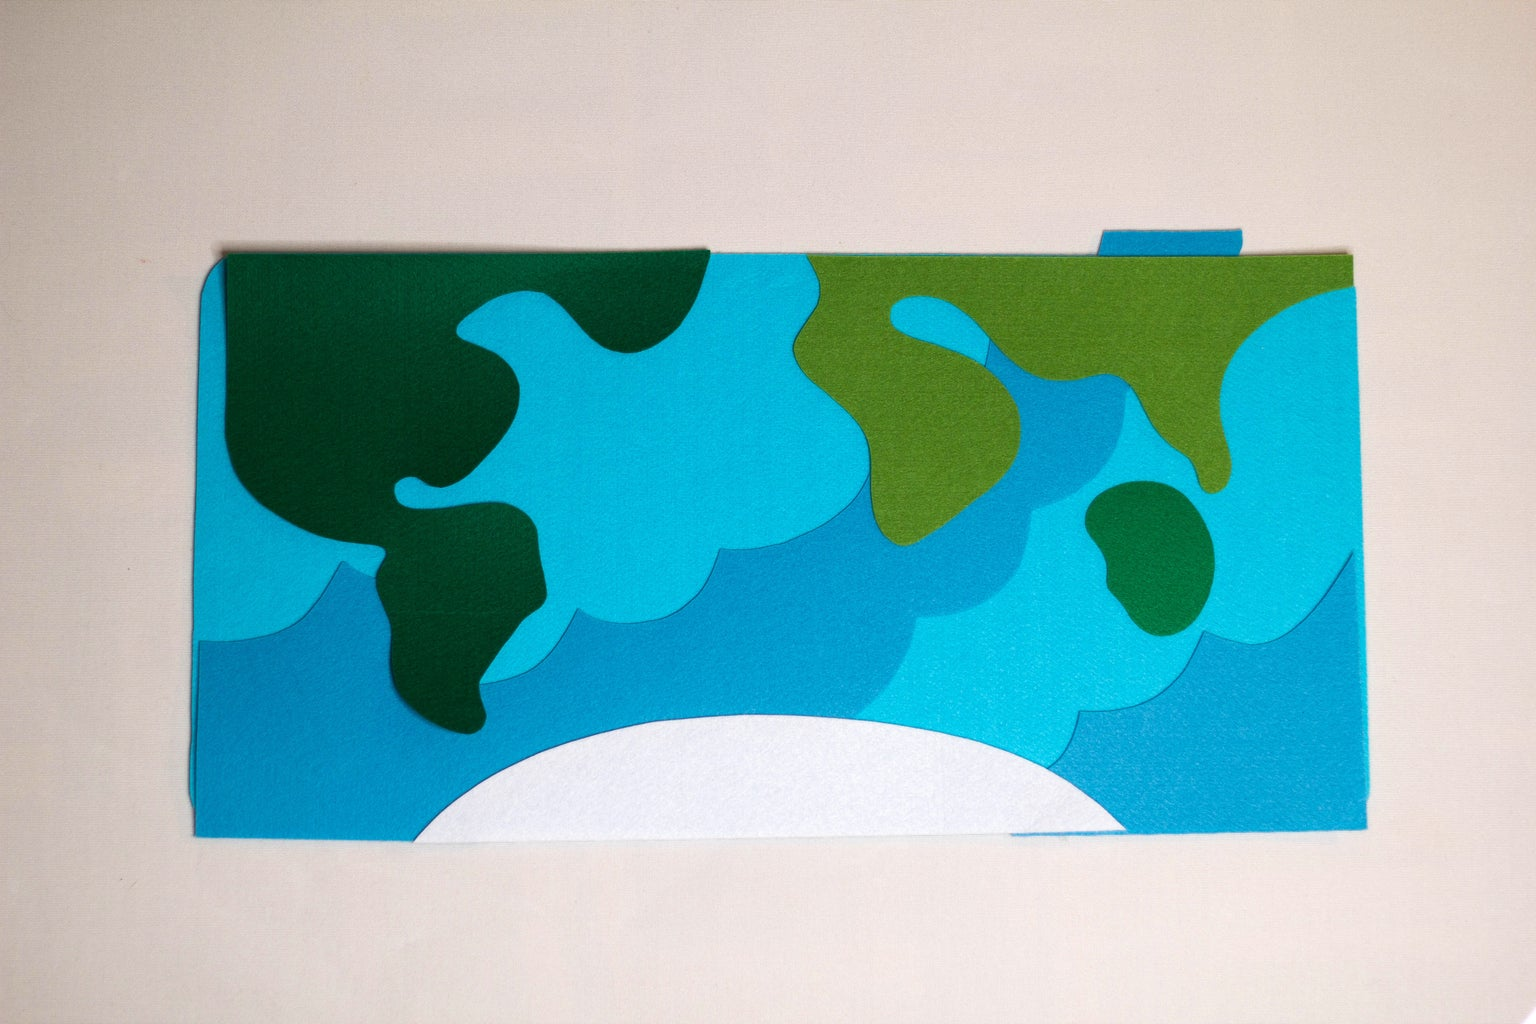 Cut Out the Base and Continents